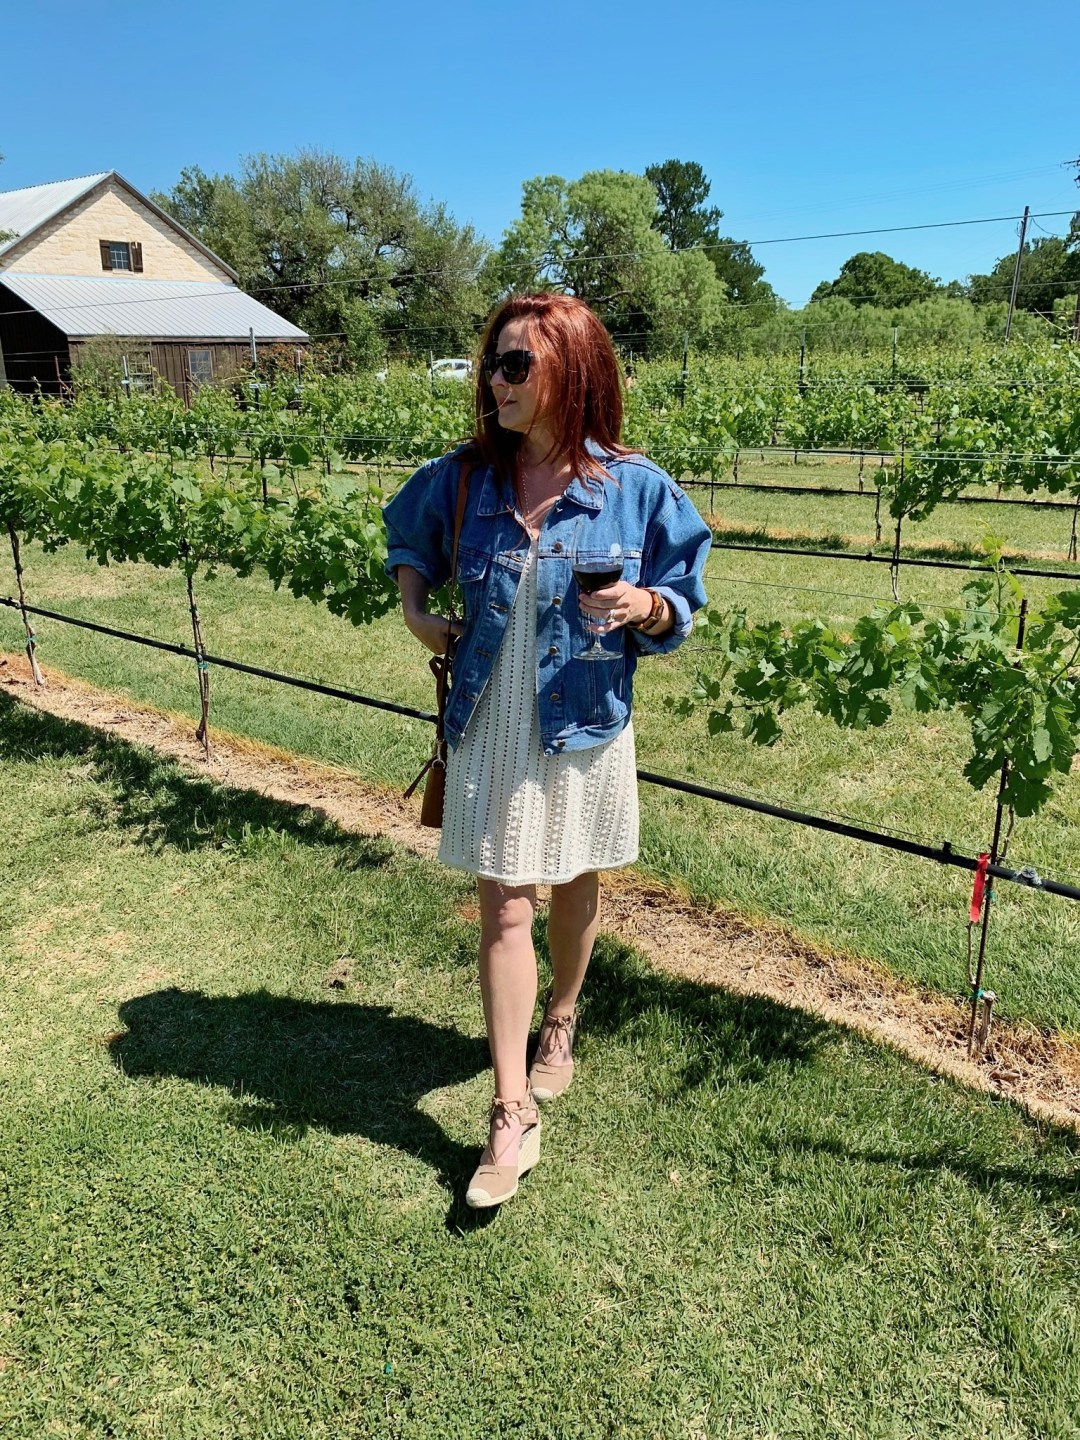 wine country, wineries, travel, places to visit Fredericksburg, denim jacket outfit ideas, zara dresses, wedges, hill country, Texas Wineries